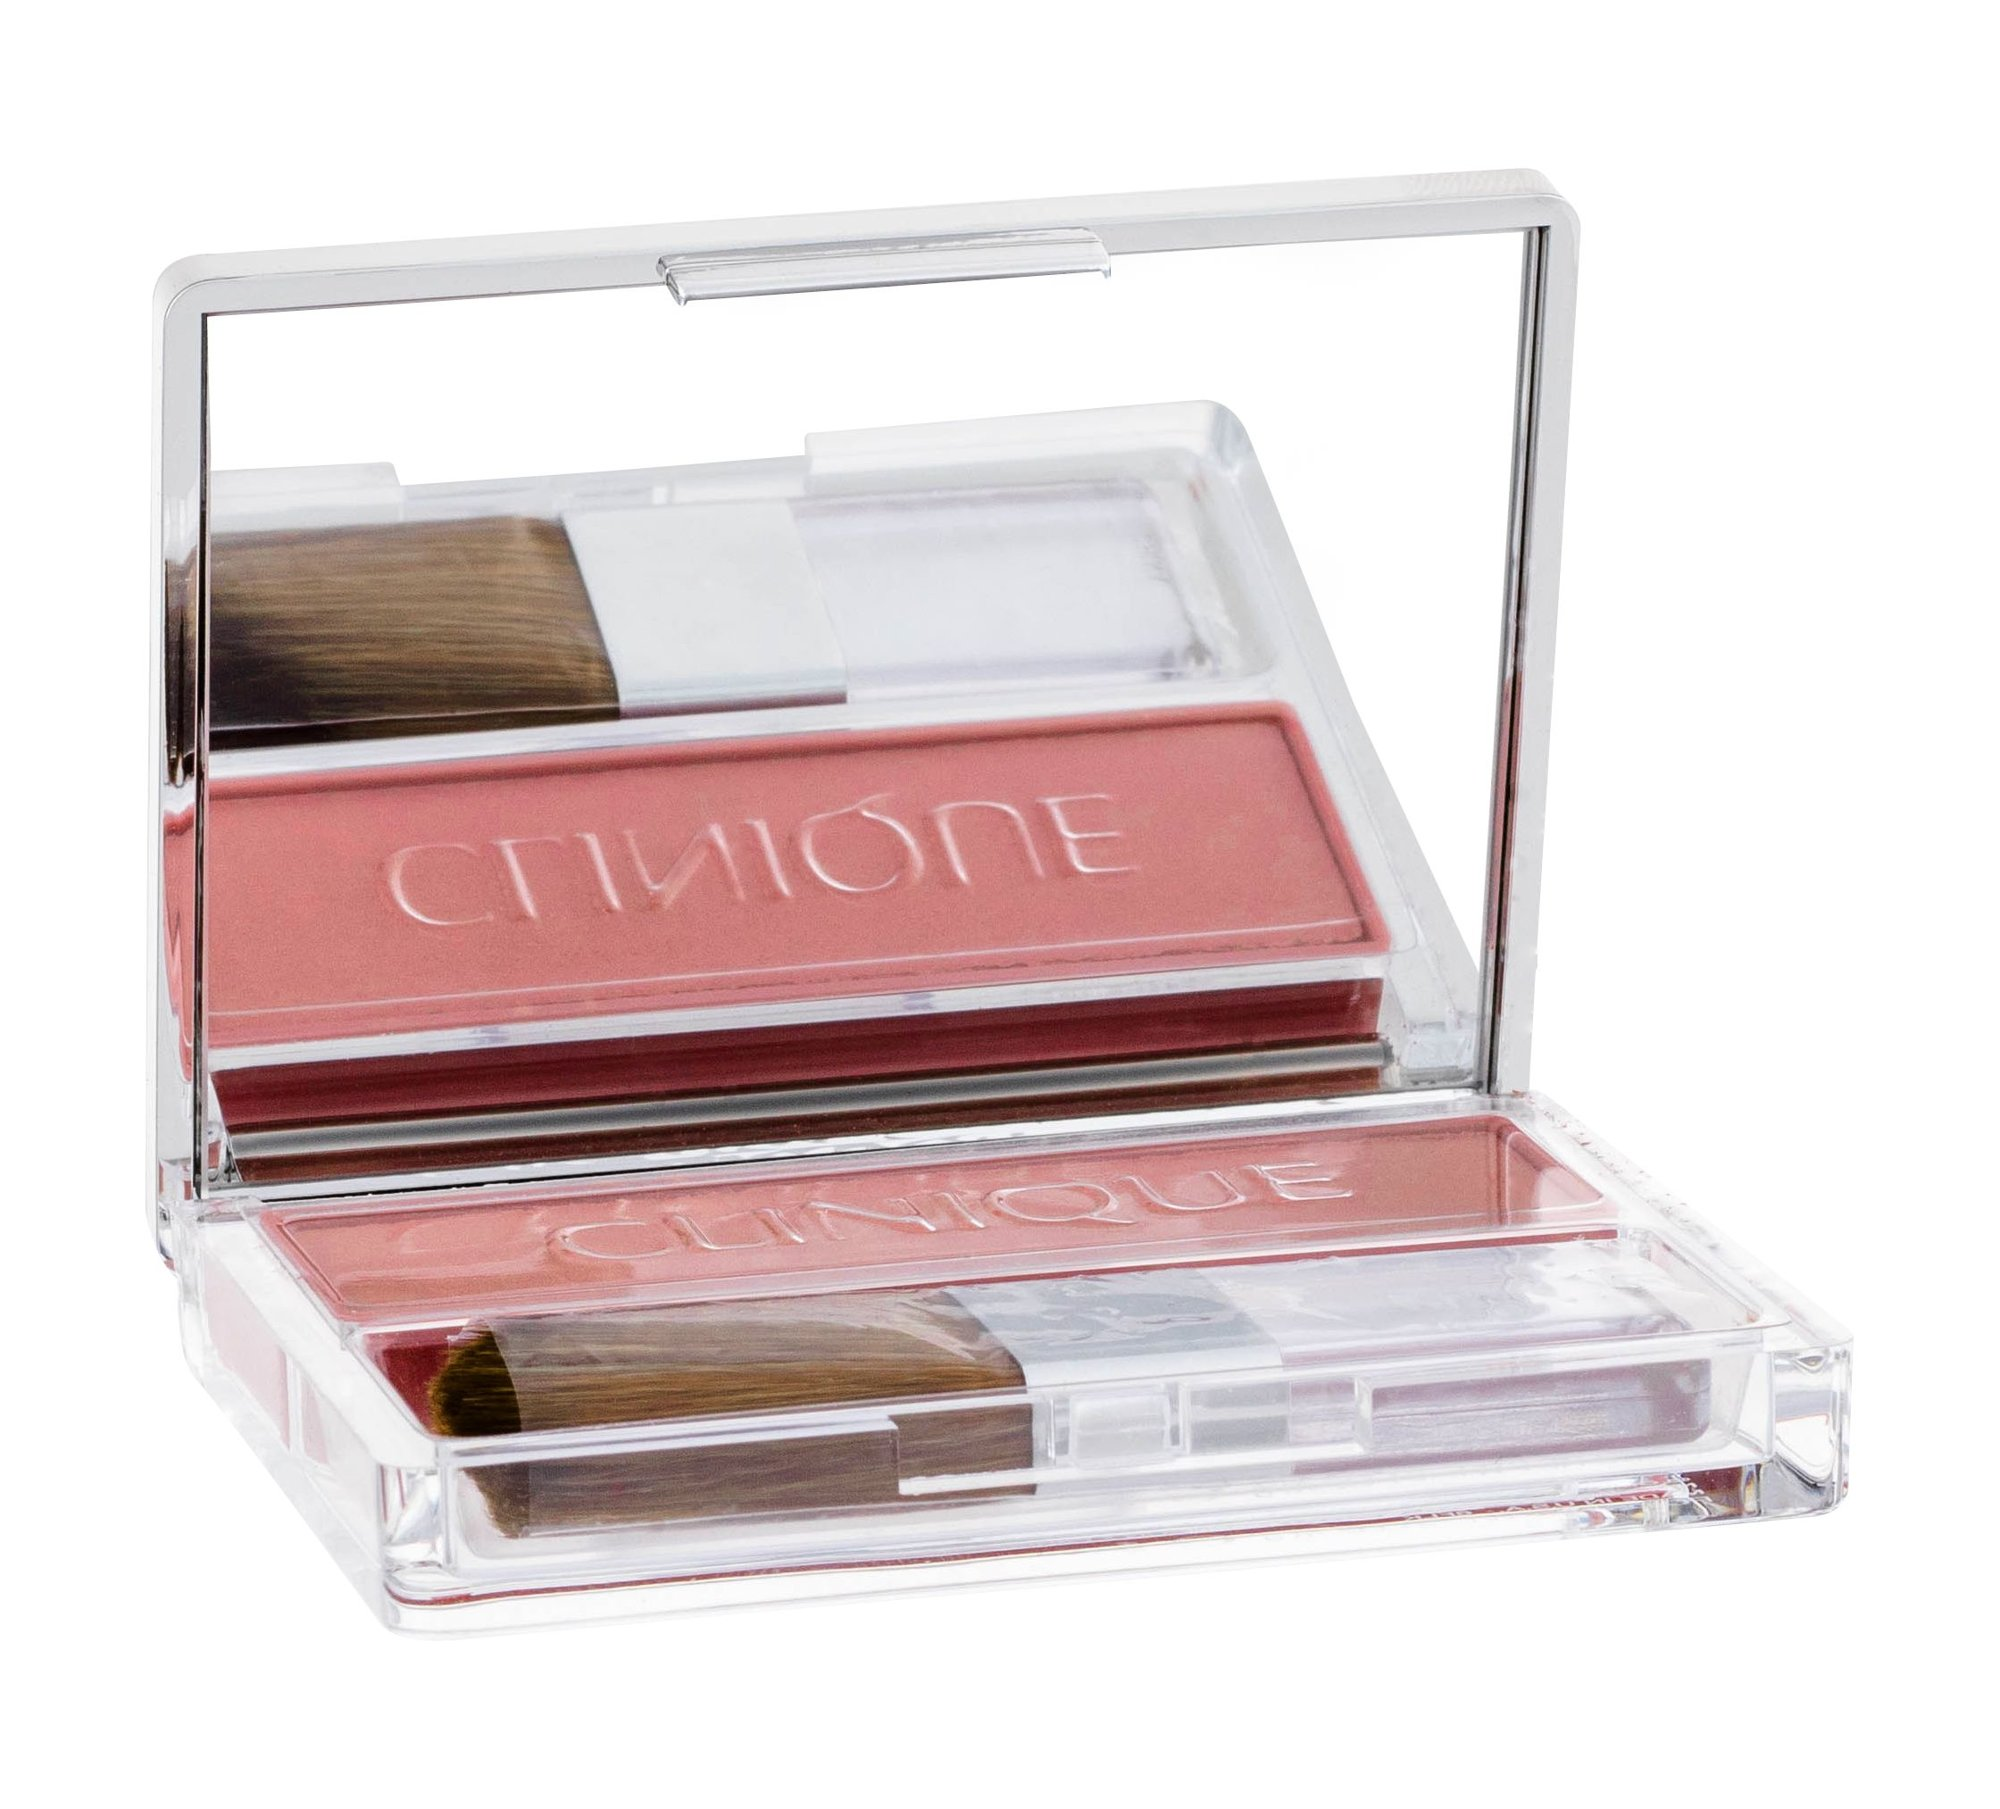 Clinique Blushing Blush Cosmetic 6ml 107 Sunset Glow